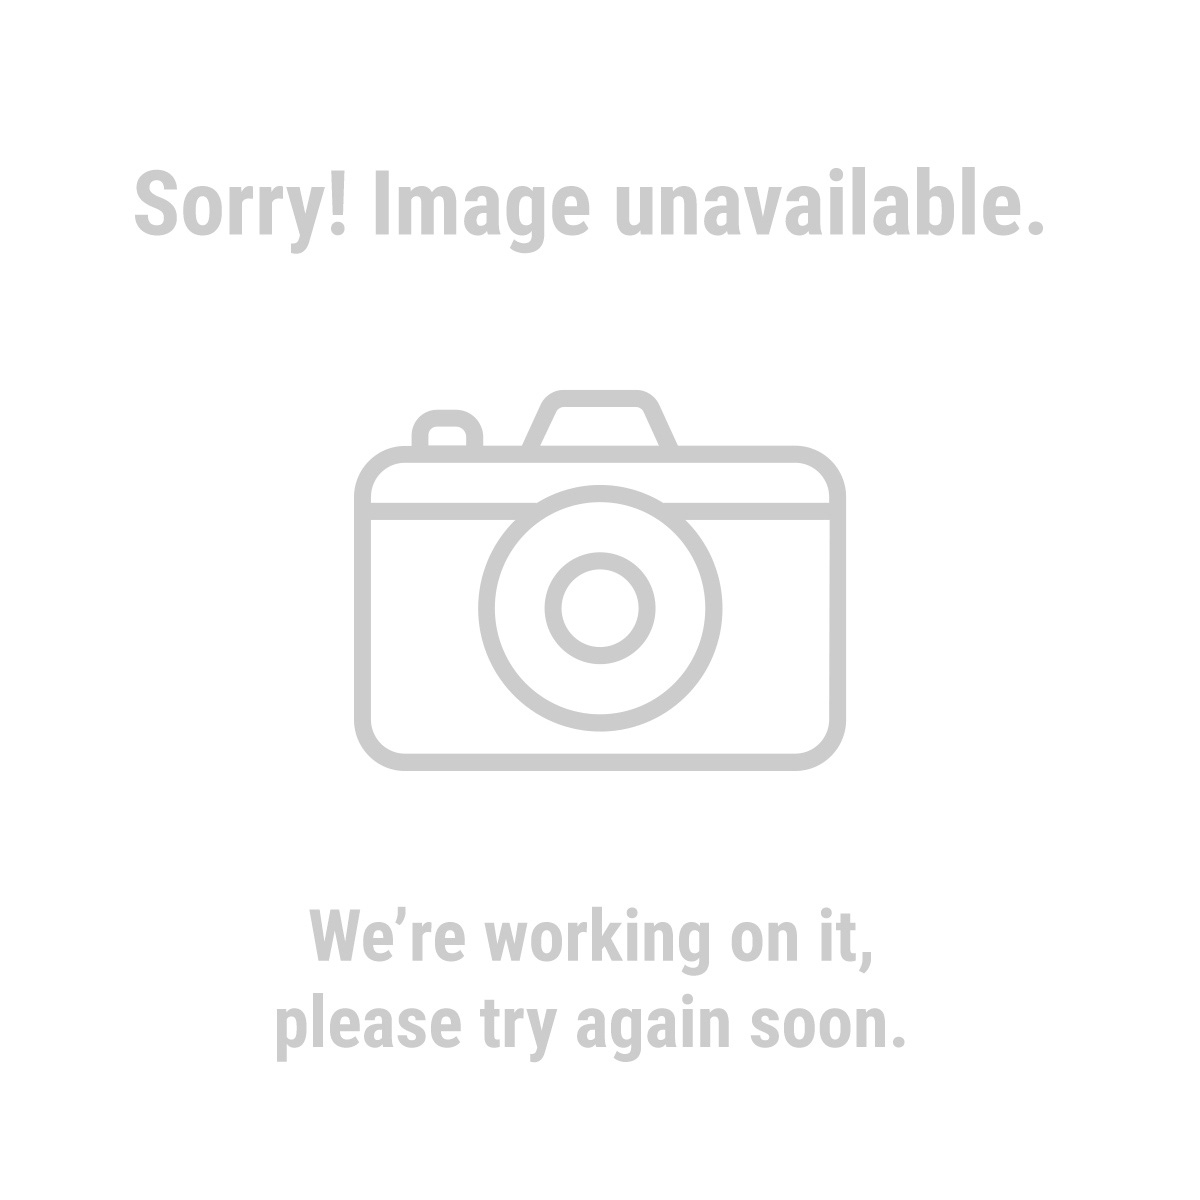 Trailer Spare Tire Carrier